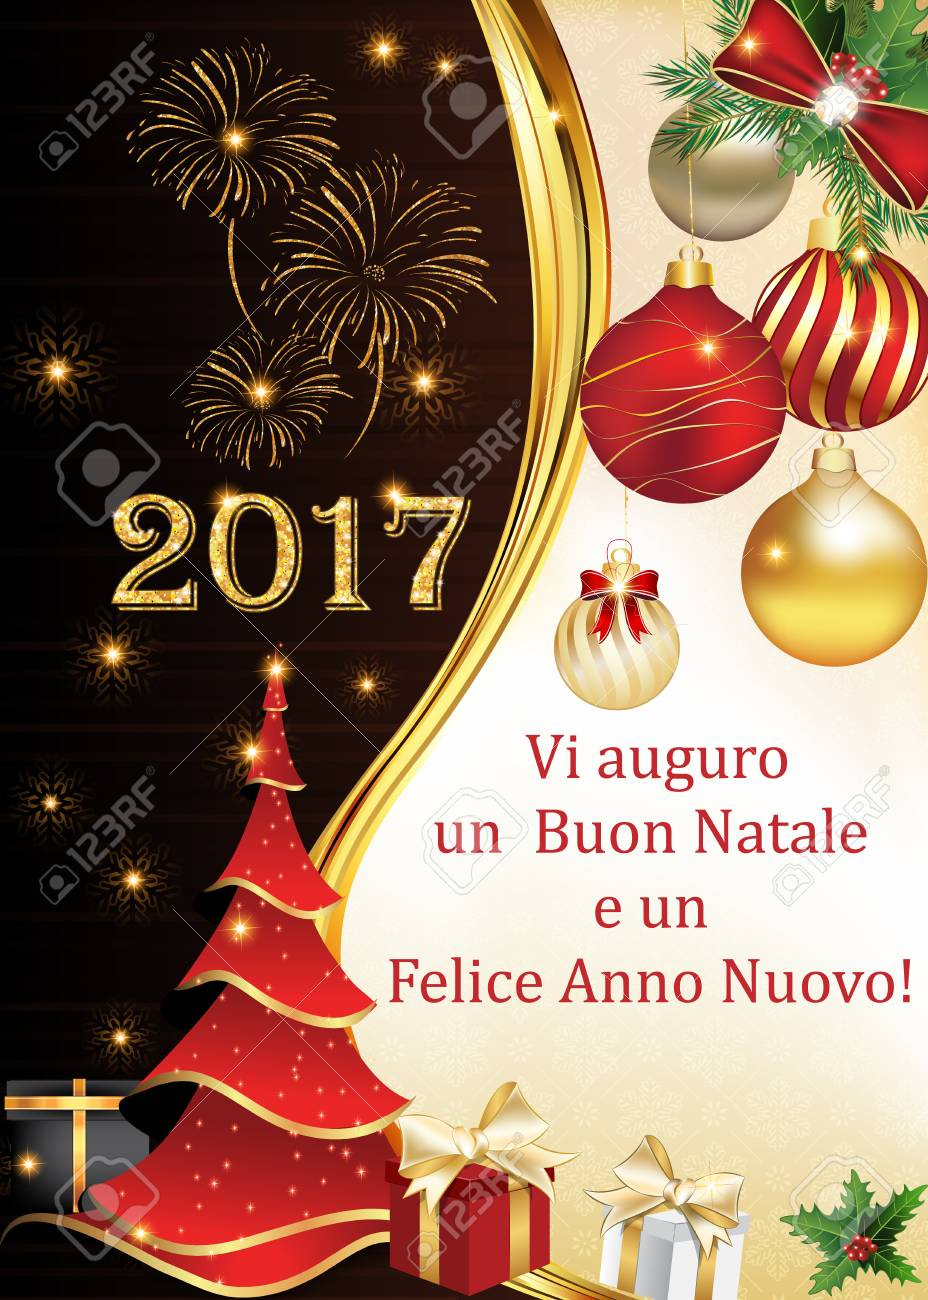 Italian New Year 2017 Corporate Greeting Card With Fireworks